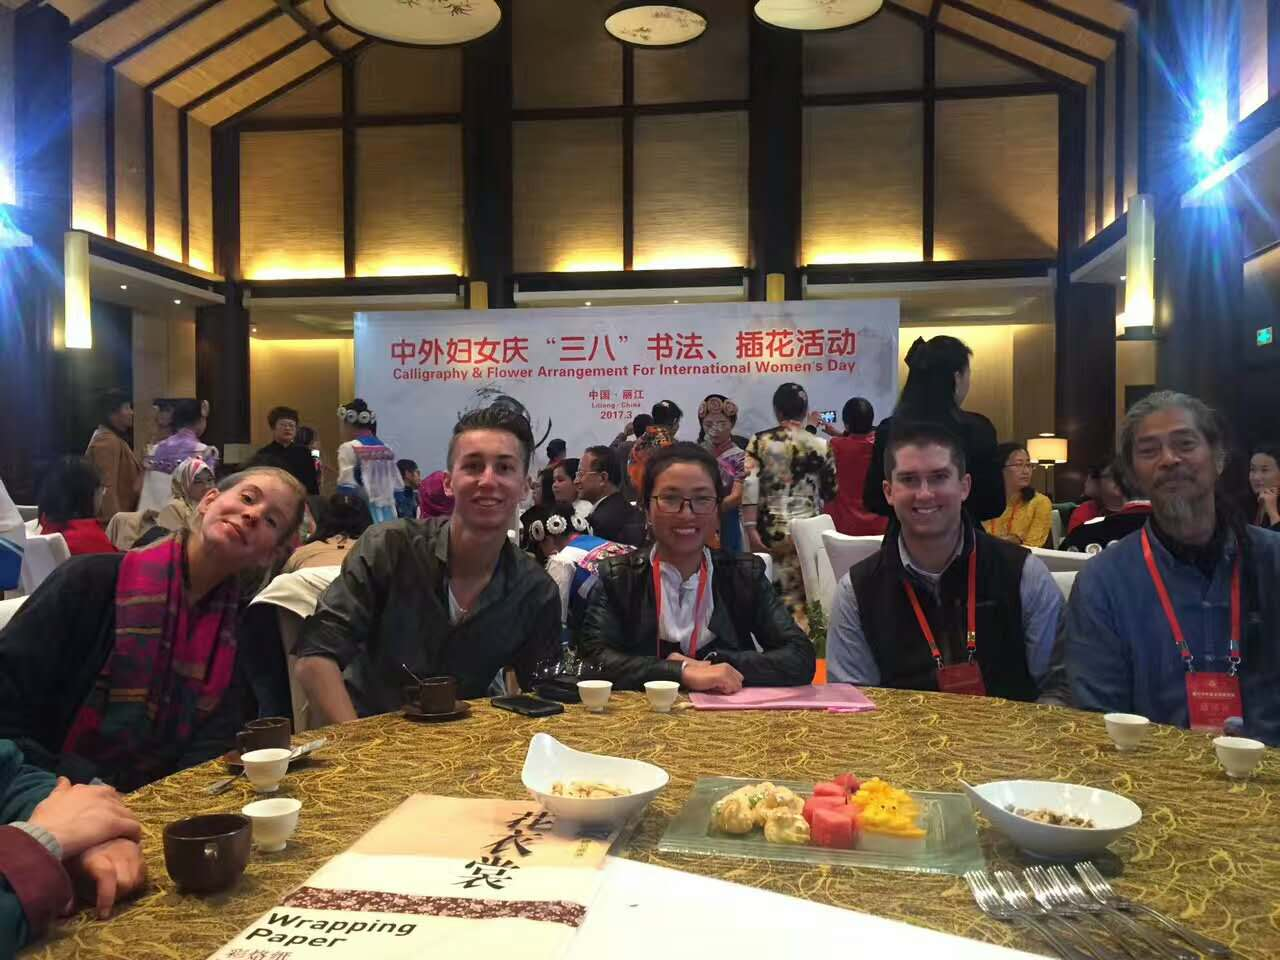 Taking part in the calligraphy and flower arrangement with friends from different countries in lijiang culture exchange festival